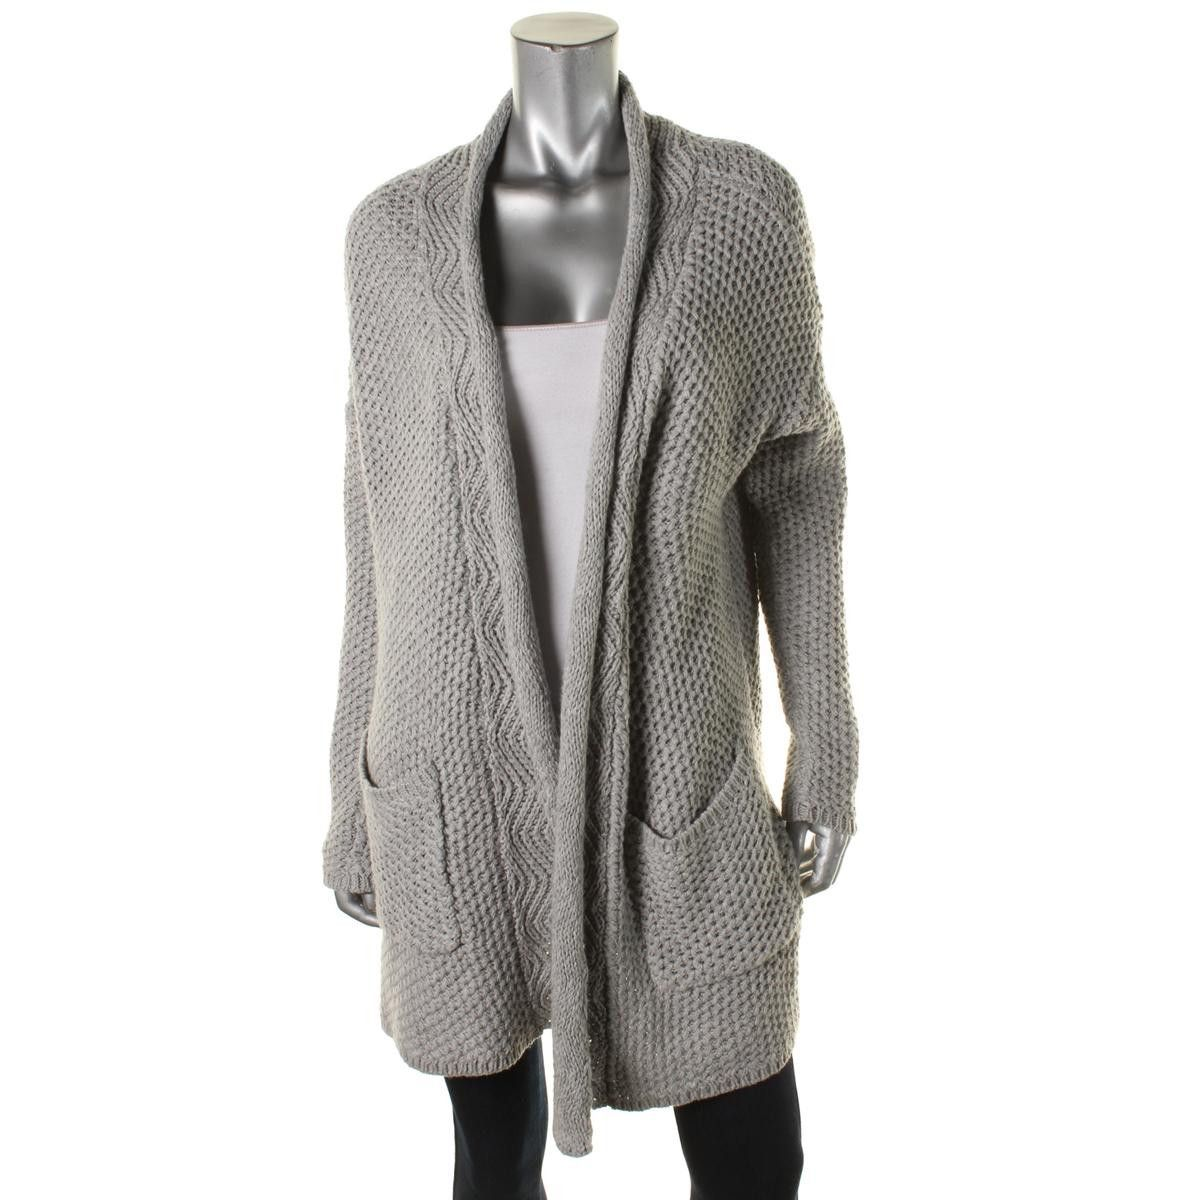 Chelsea28 Womens Knit Woven Cardigan Sweater